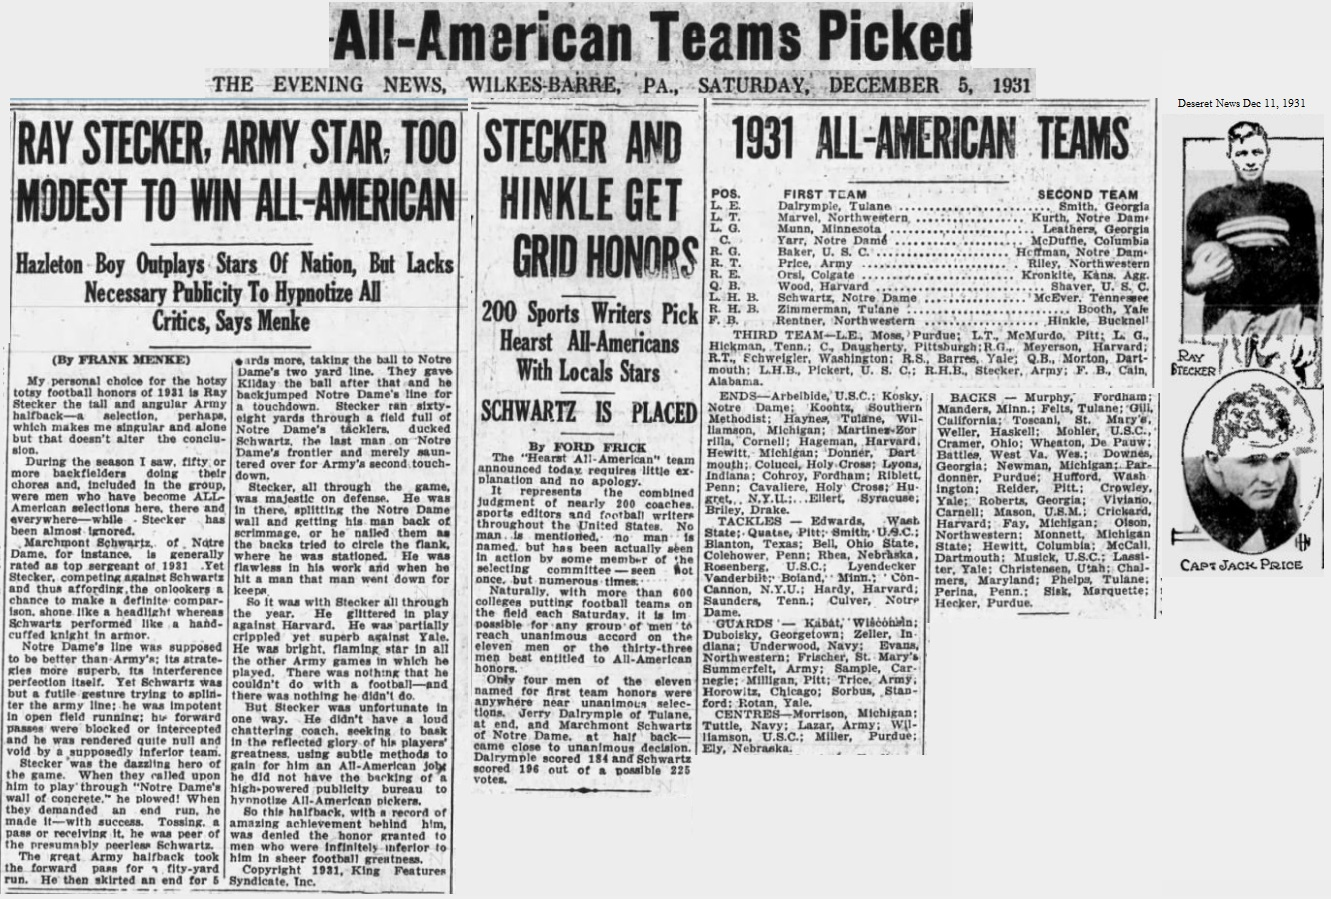 ArmyFB_1931_Stecker-Price-Summerfelt-Lazar_All-America_EveningNews_WilkesBarrePA_Dec51931